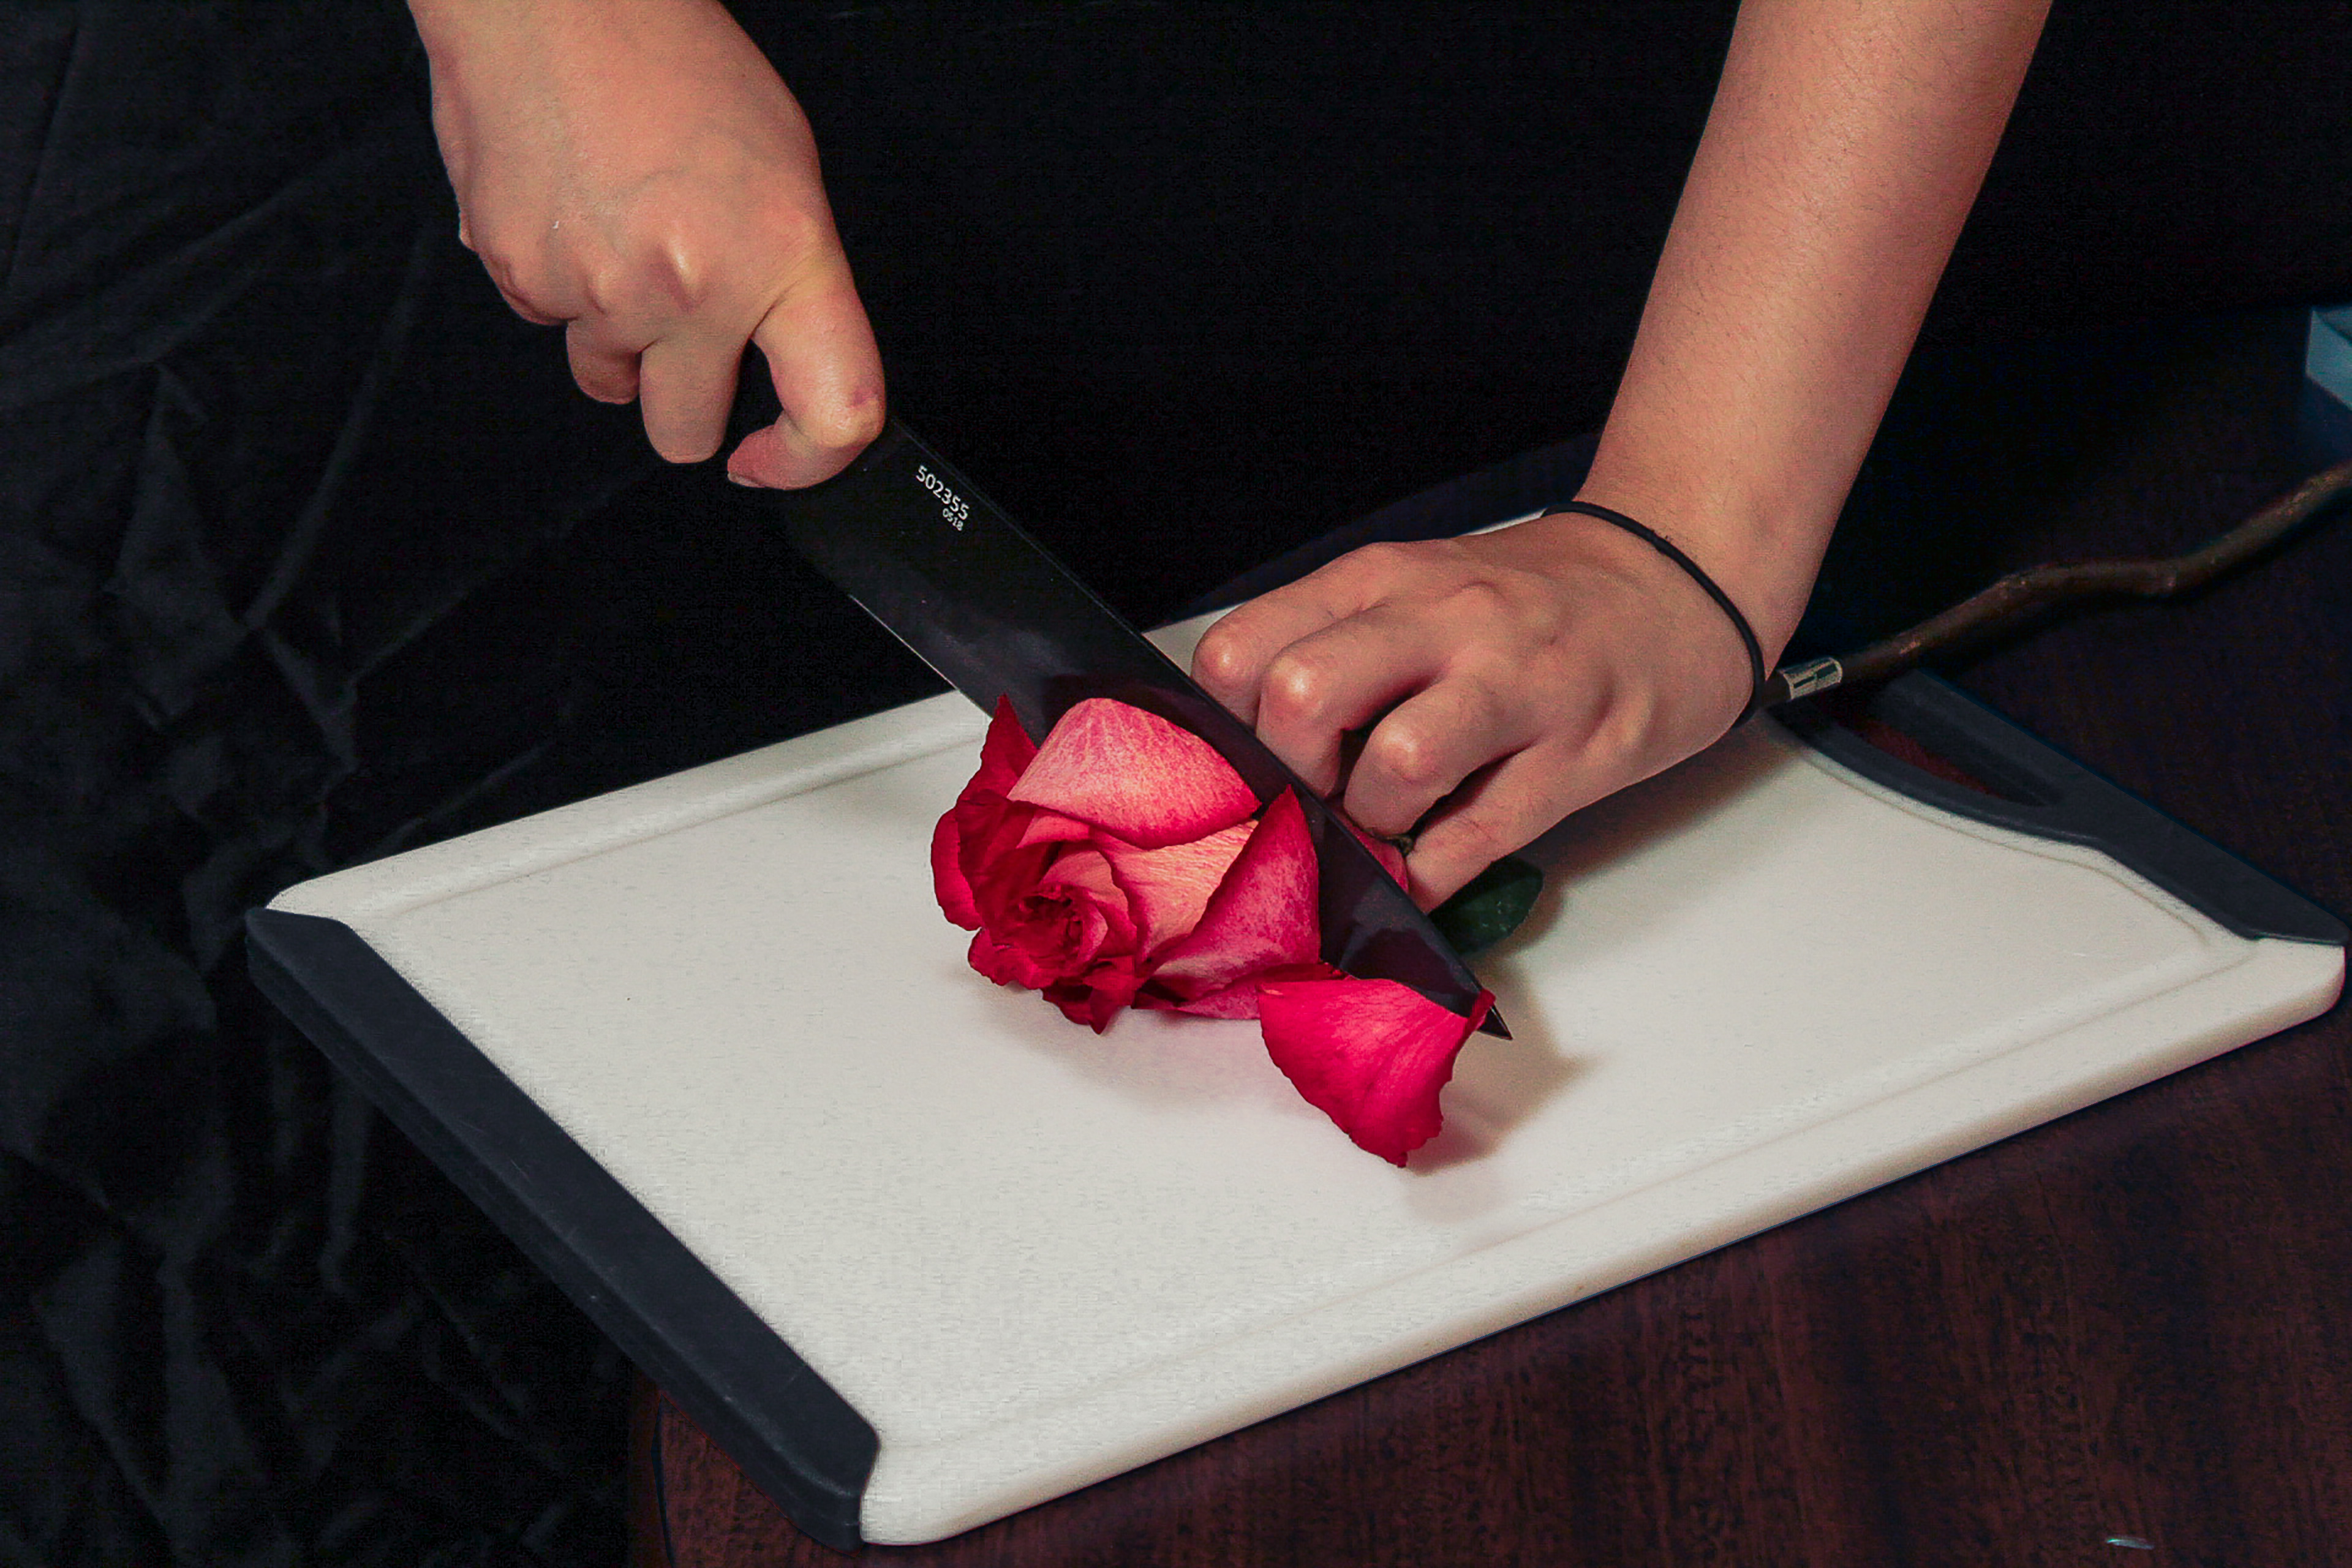 Two hands use a onyx chef's knife to cut a large pink-red rose in half.